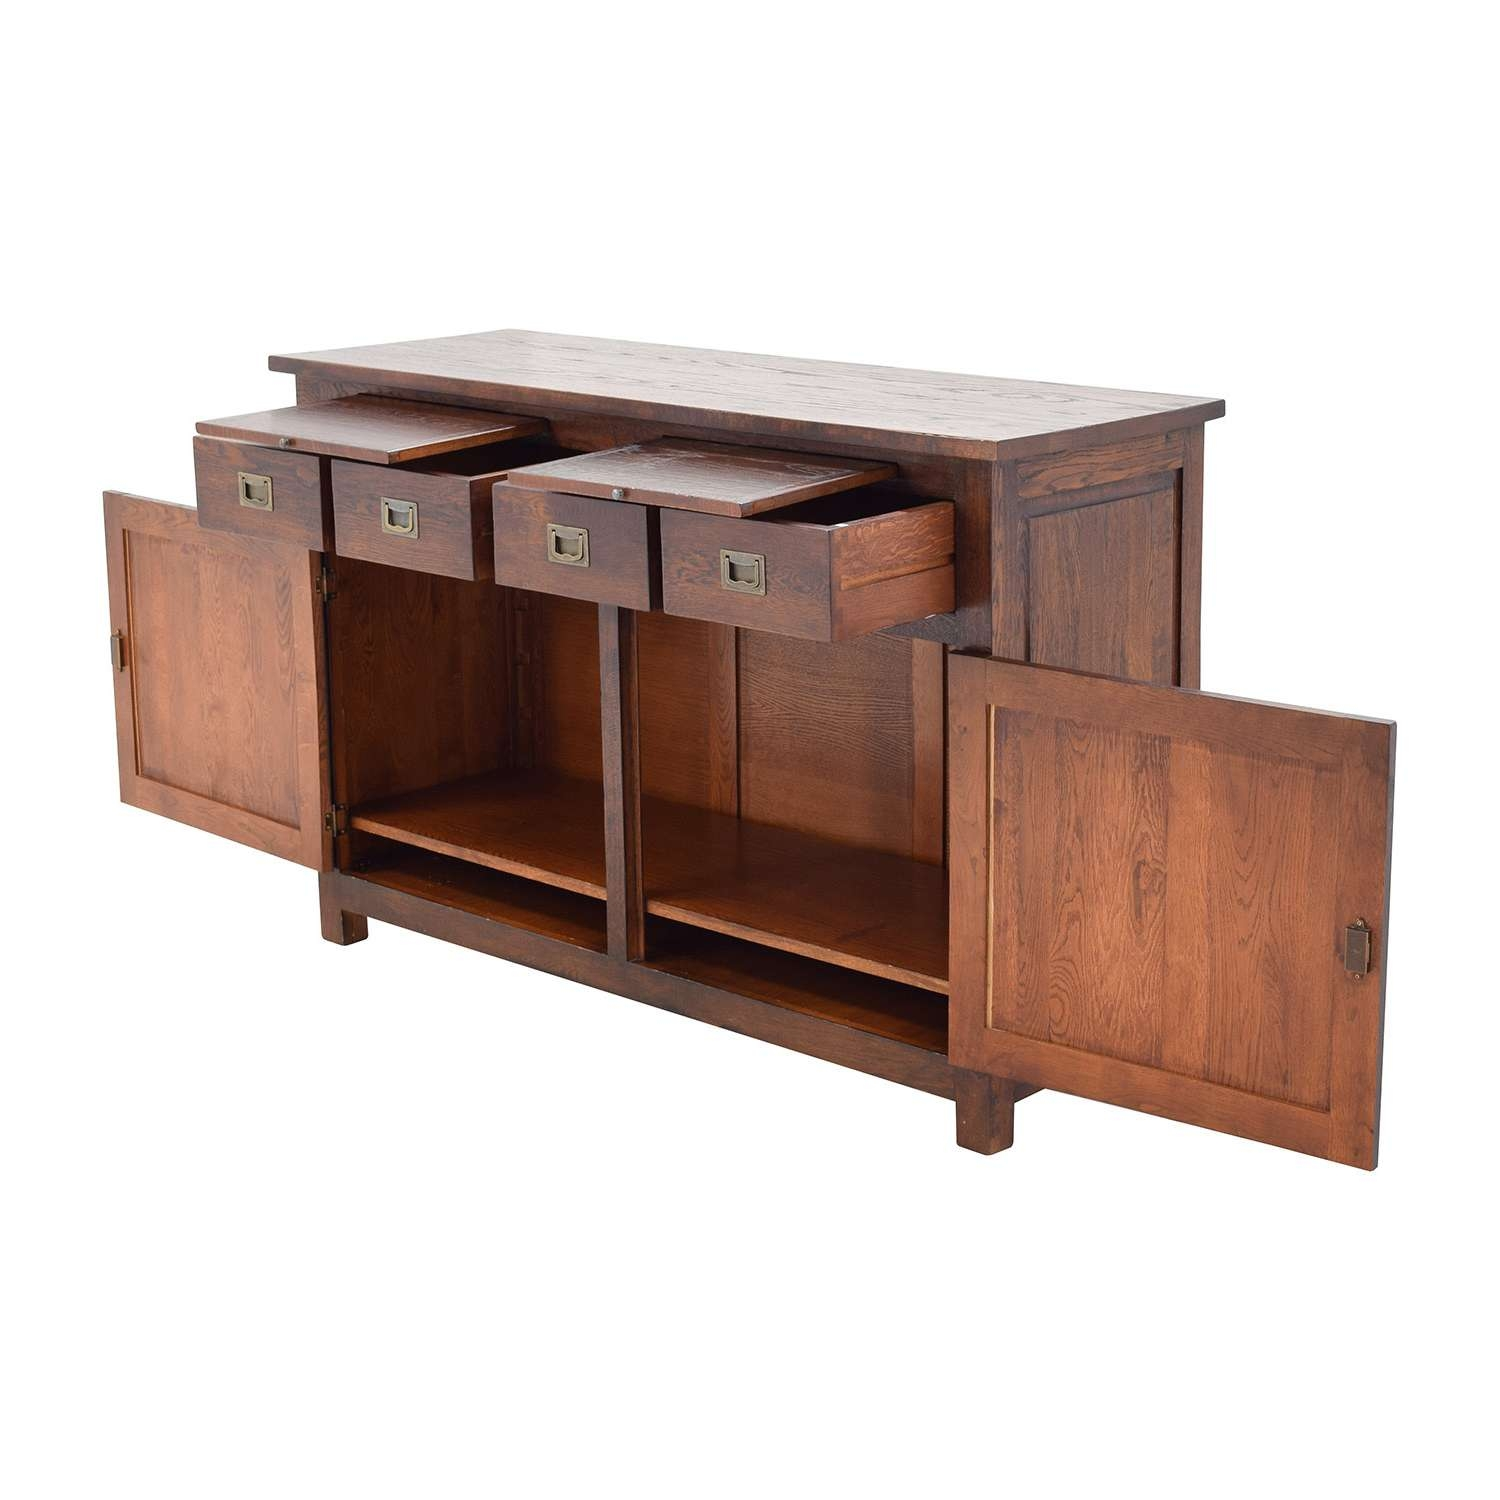 67% Off – Crate And Barrel Crate & Barrel Bordeaux Buffet Within Crate And Barrel Sideboards (Gallery 4 of 20)